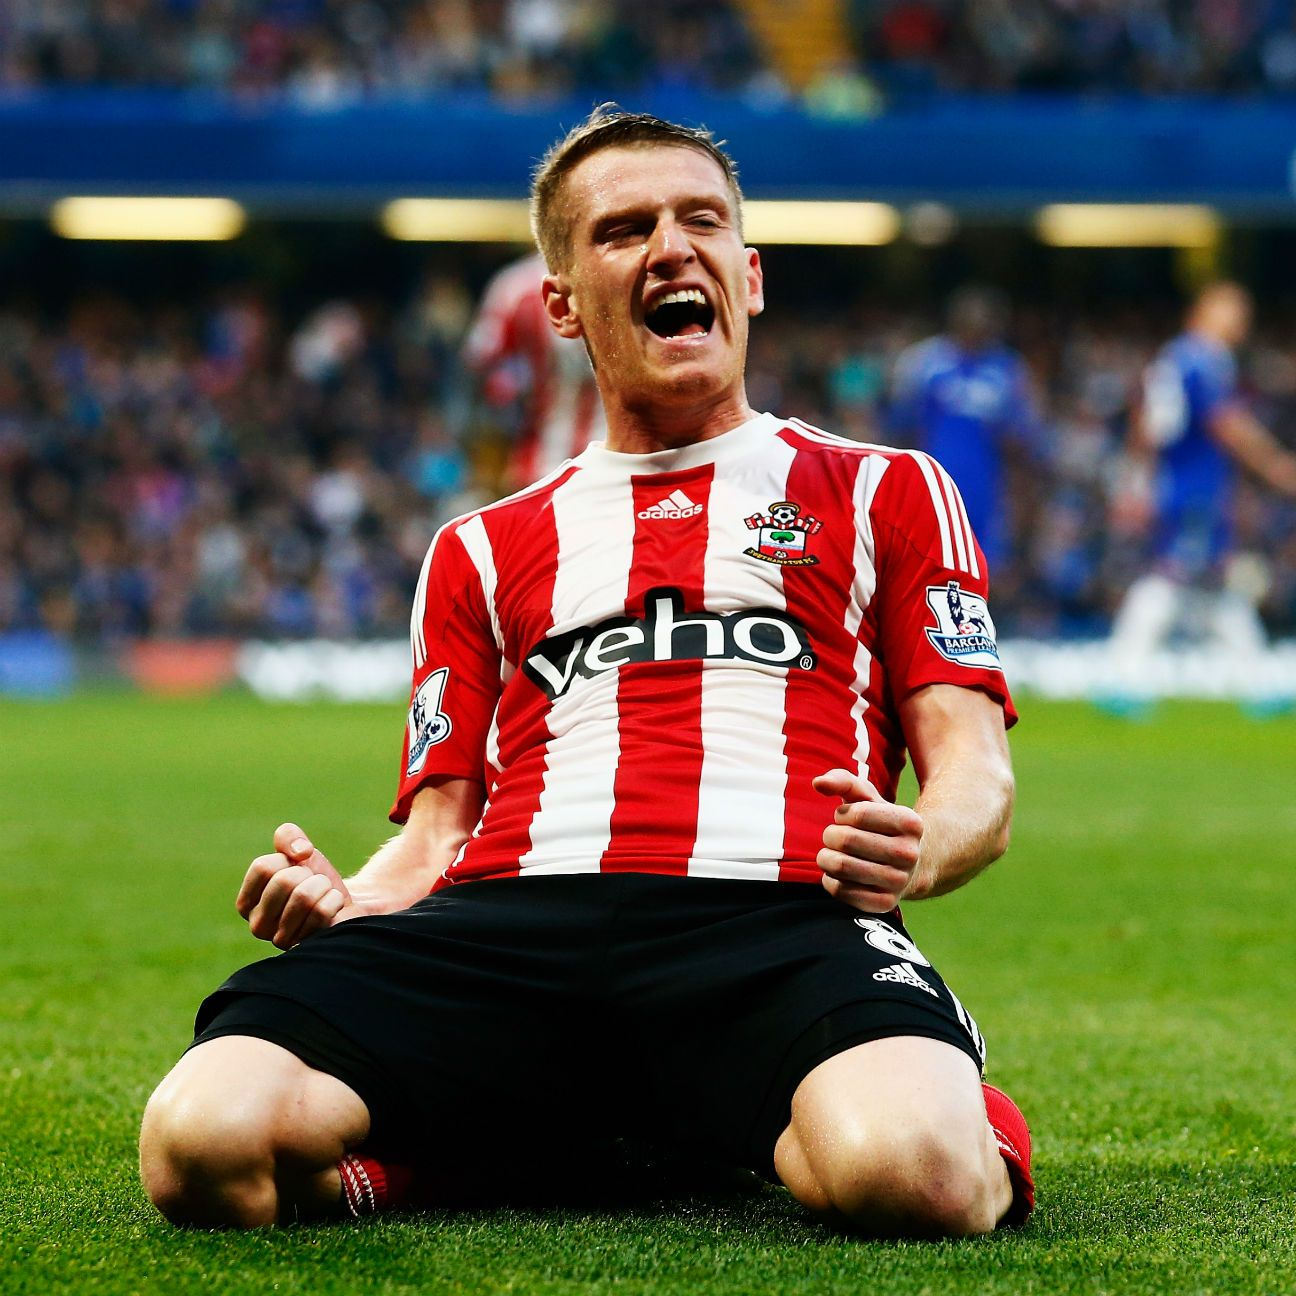 Steven Davis has two goals in 11 Premier League matches this season for Southampton.